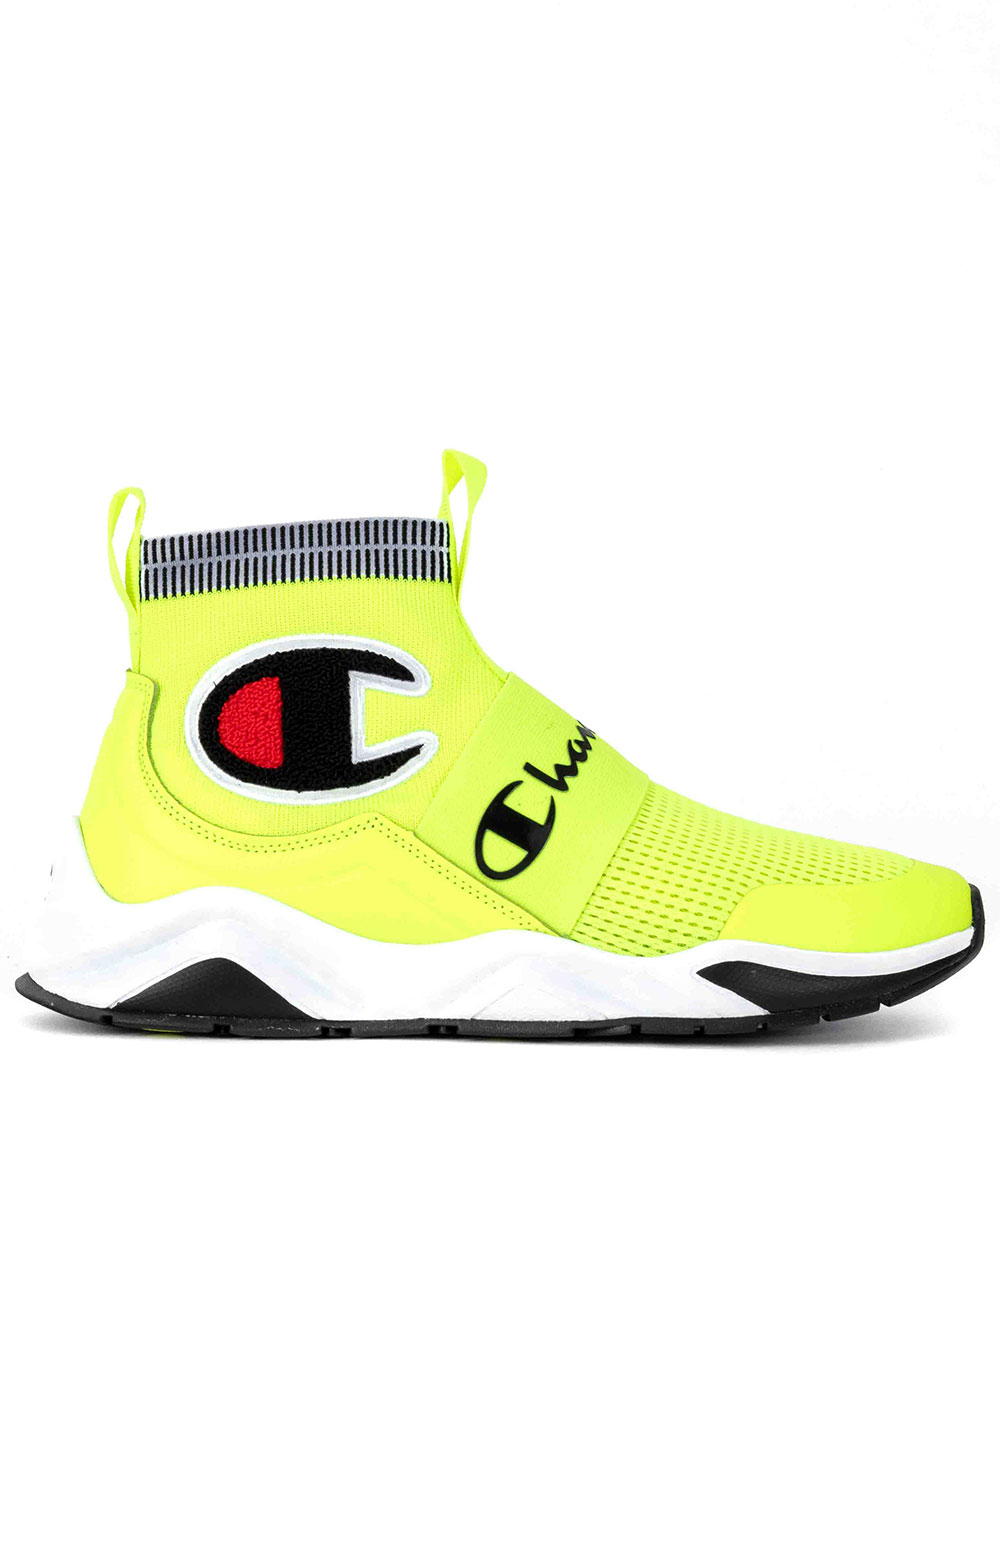 Rally Pro Shoes - Neon Light/Black